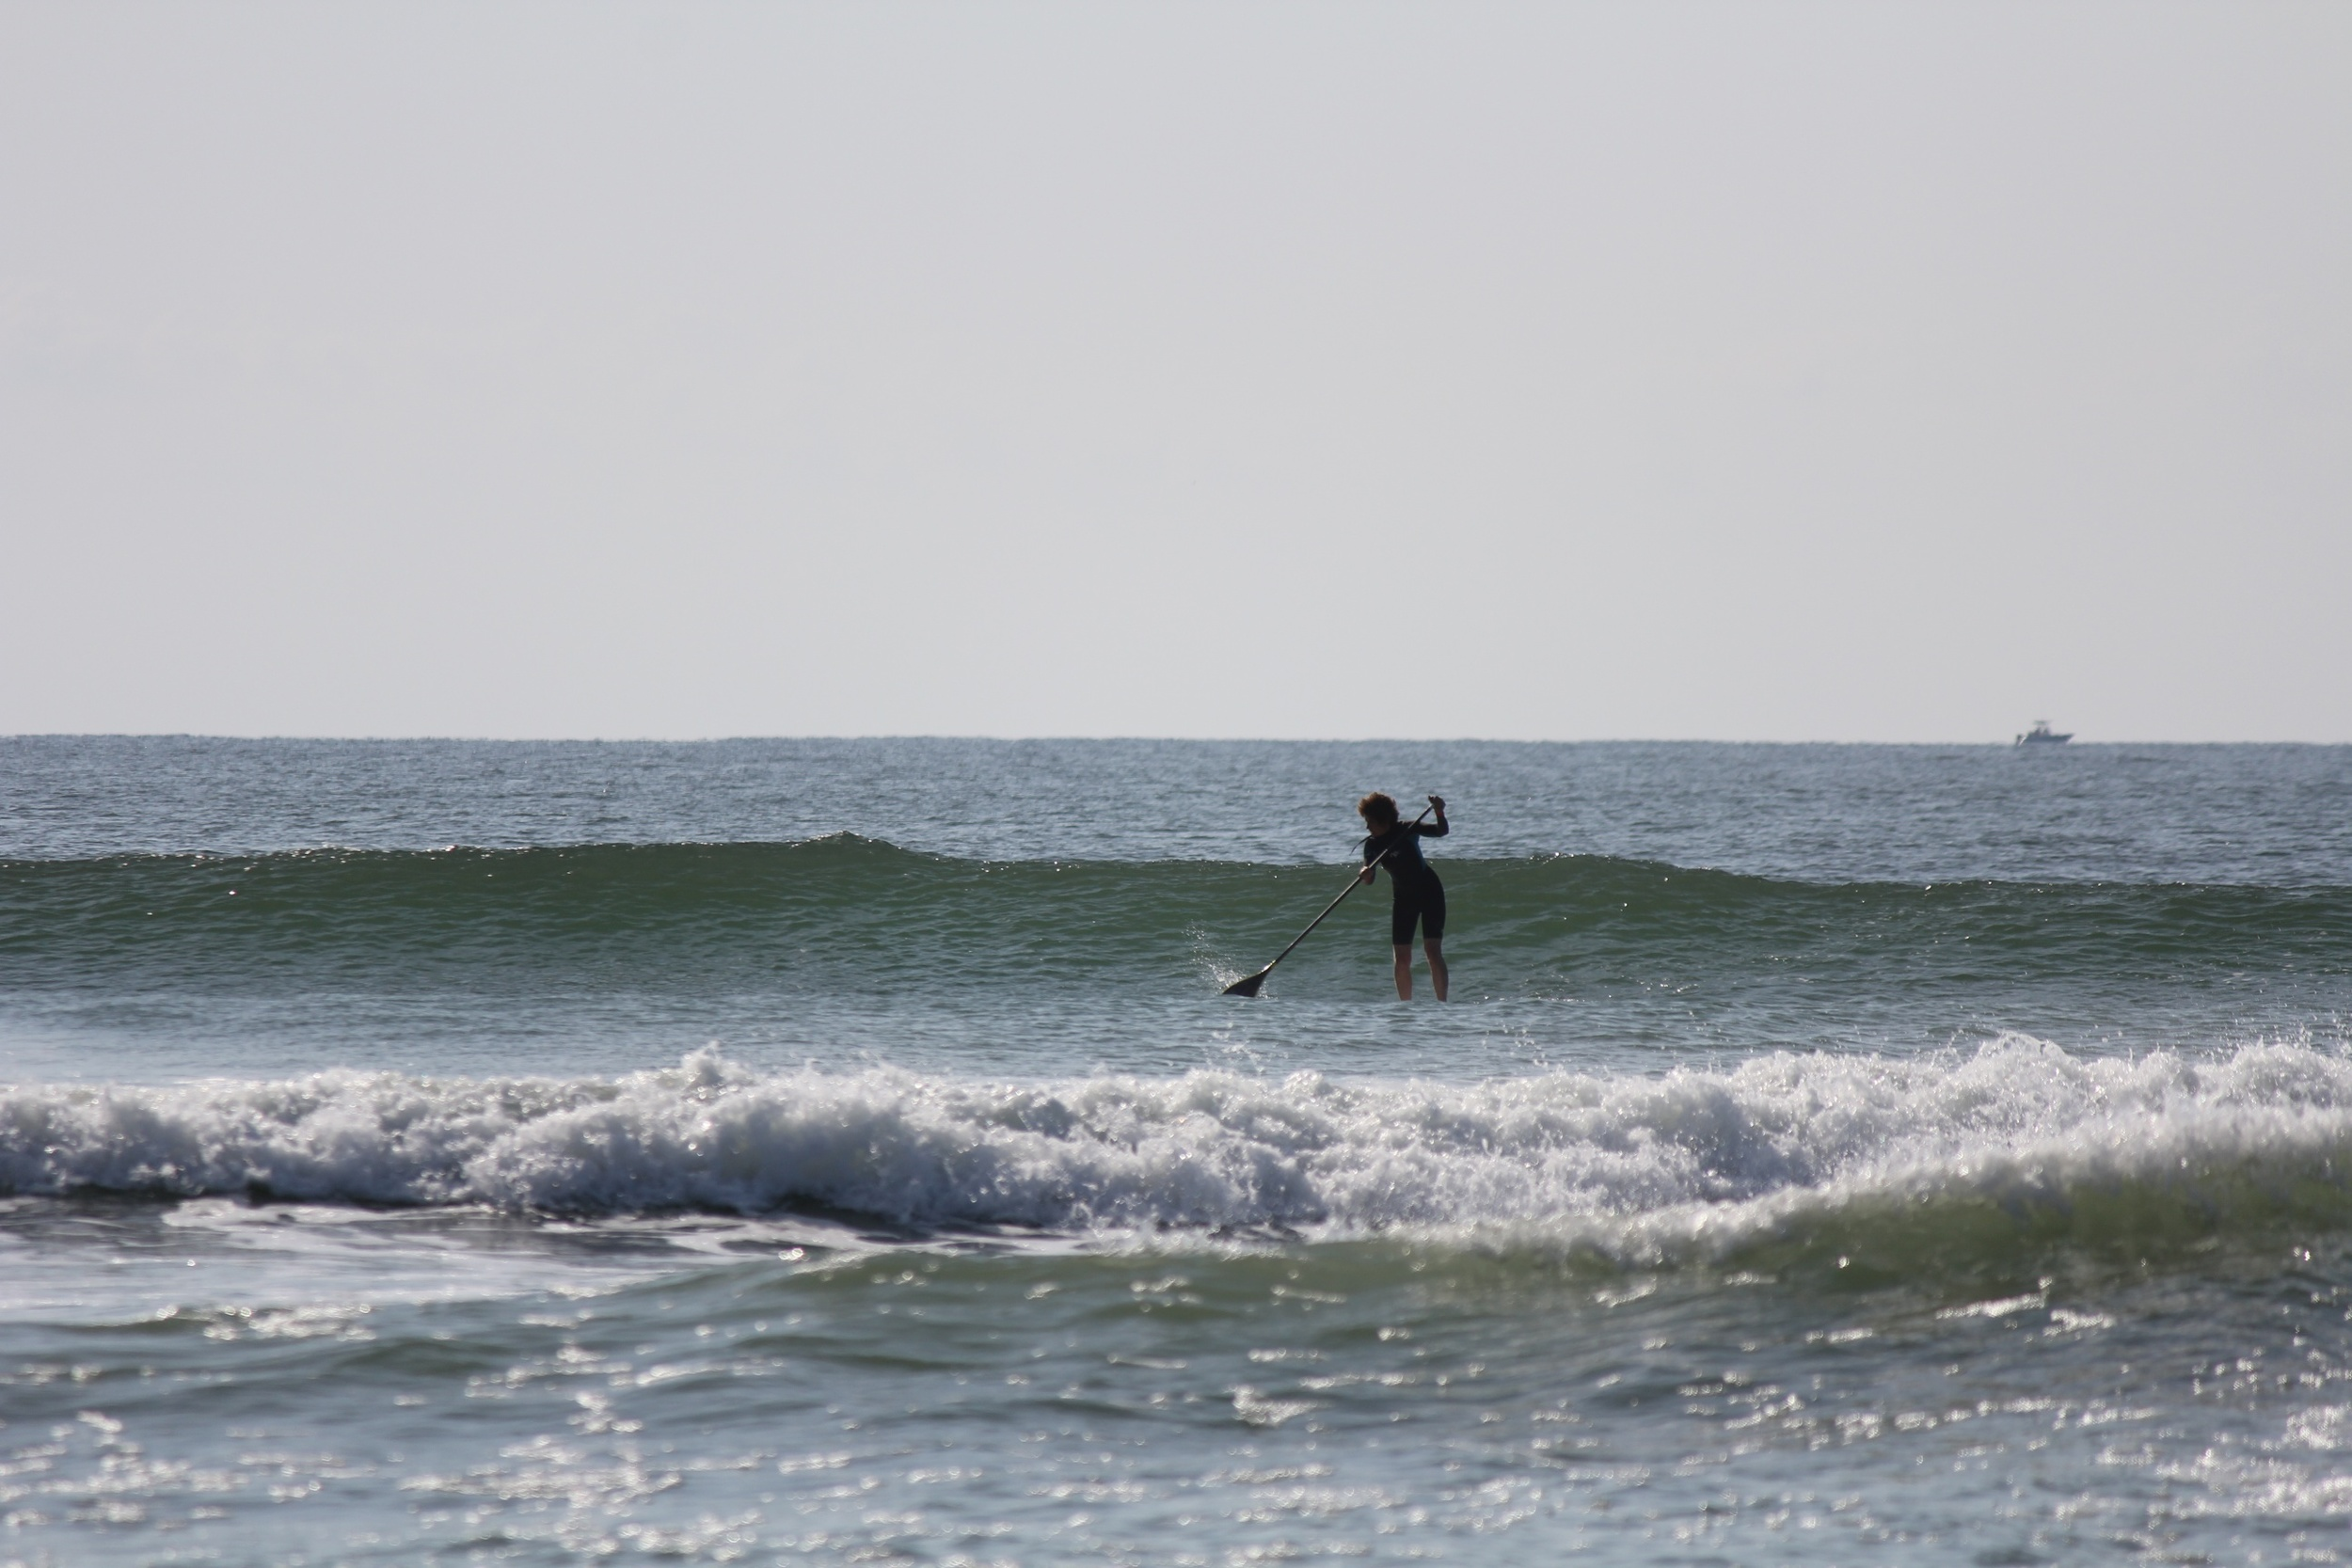 Jacky on the 9'8 Thirty-aught-Six